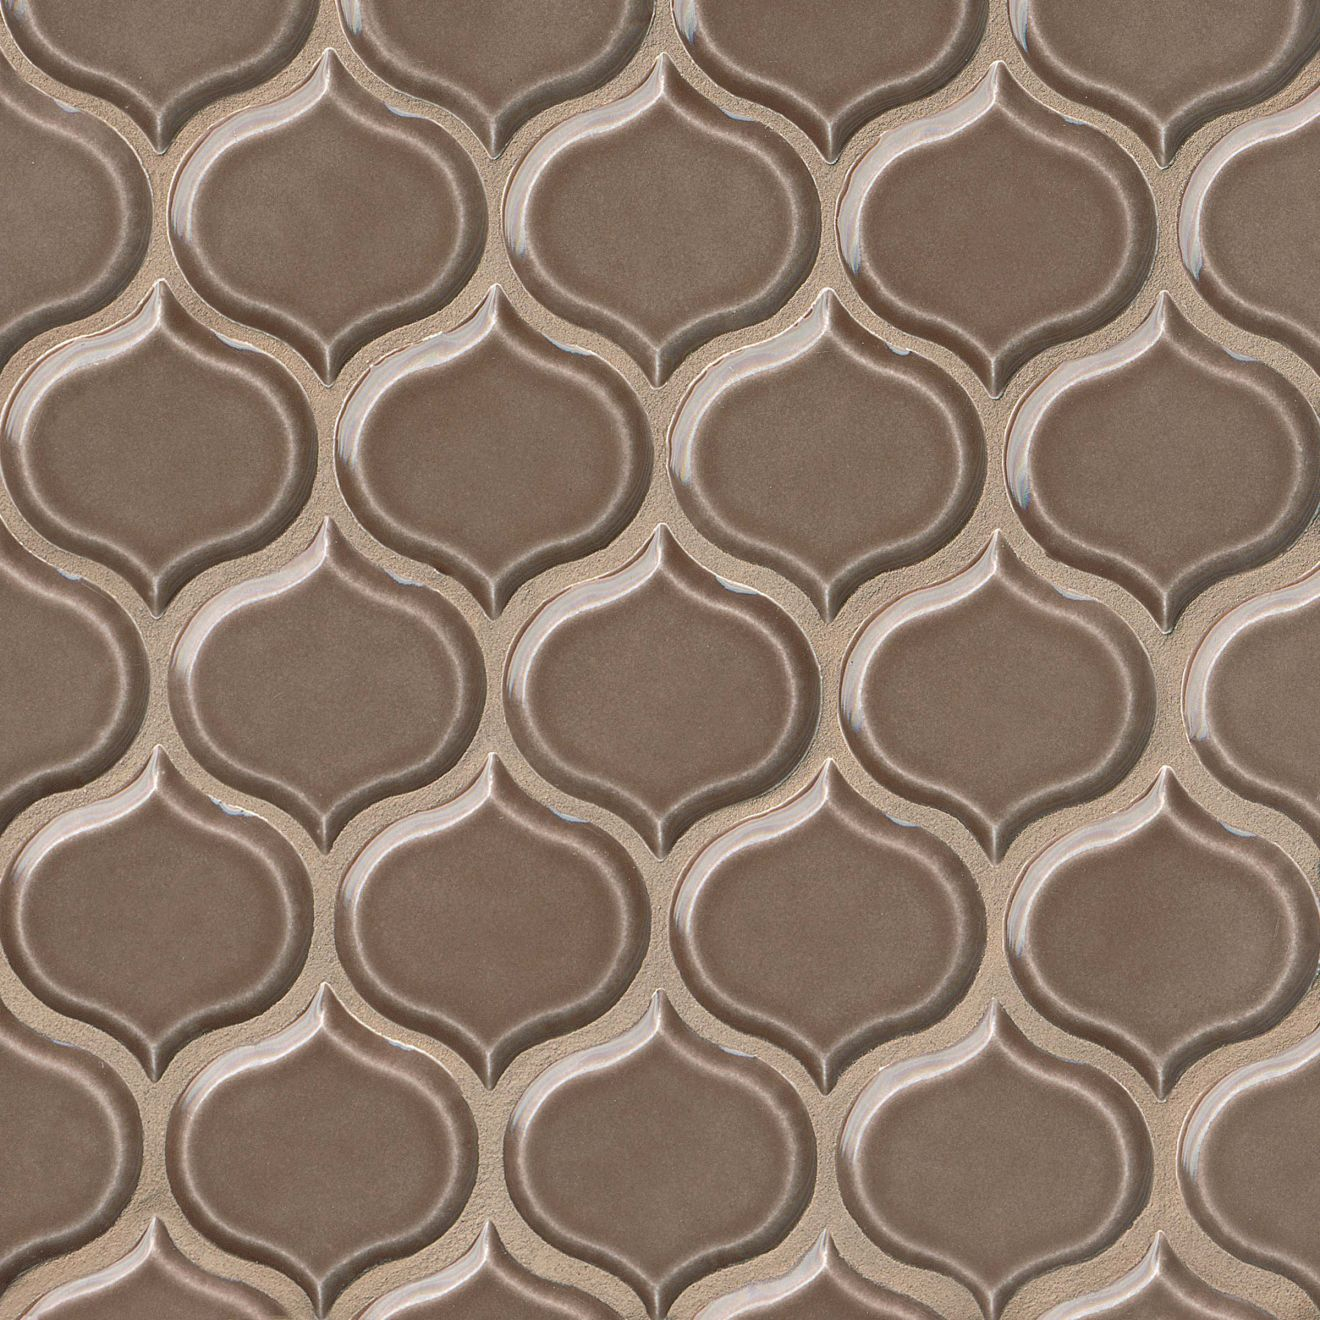 """Provincetown 3-1/16"""" x 2-7/8"""" Wall Mosaic in Brewster Brown"""